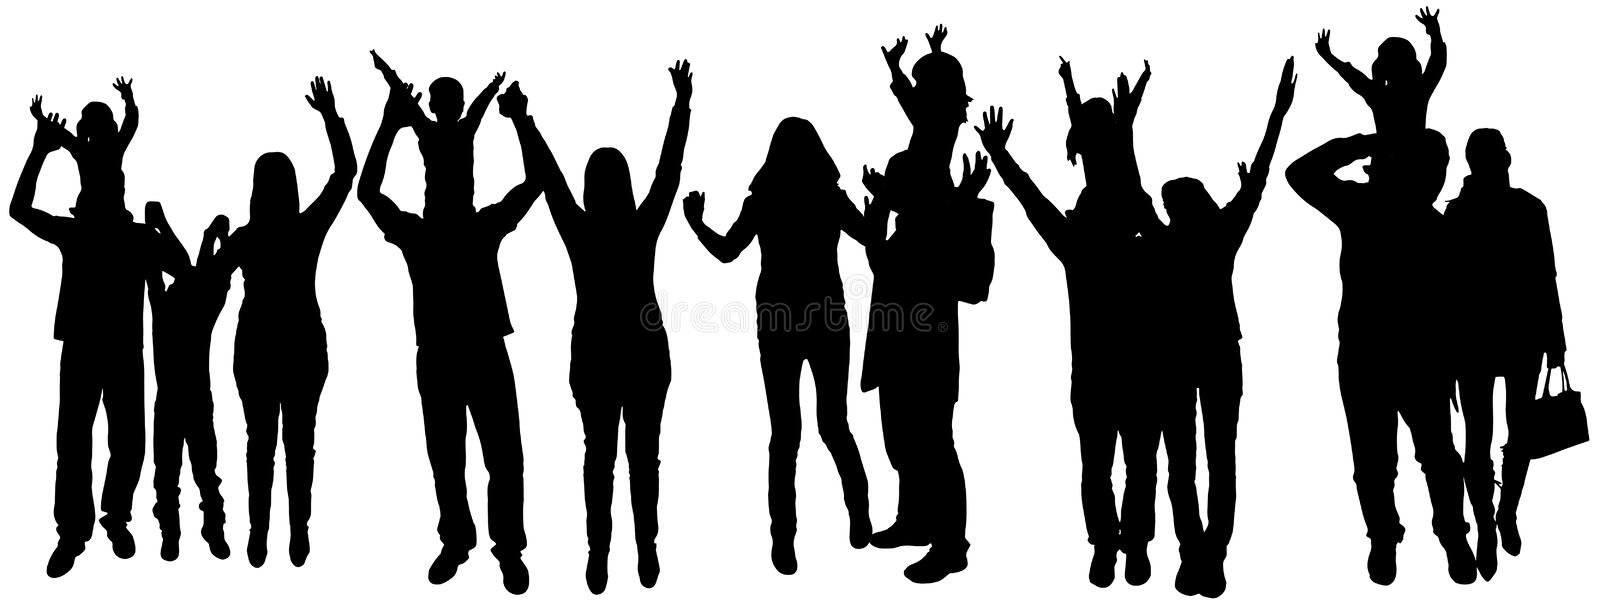 african american family silhouette vector illustration with family silhouettes stock vector silhouette family american african